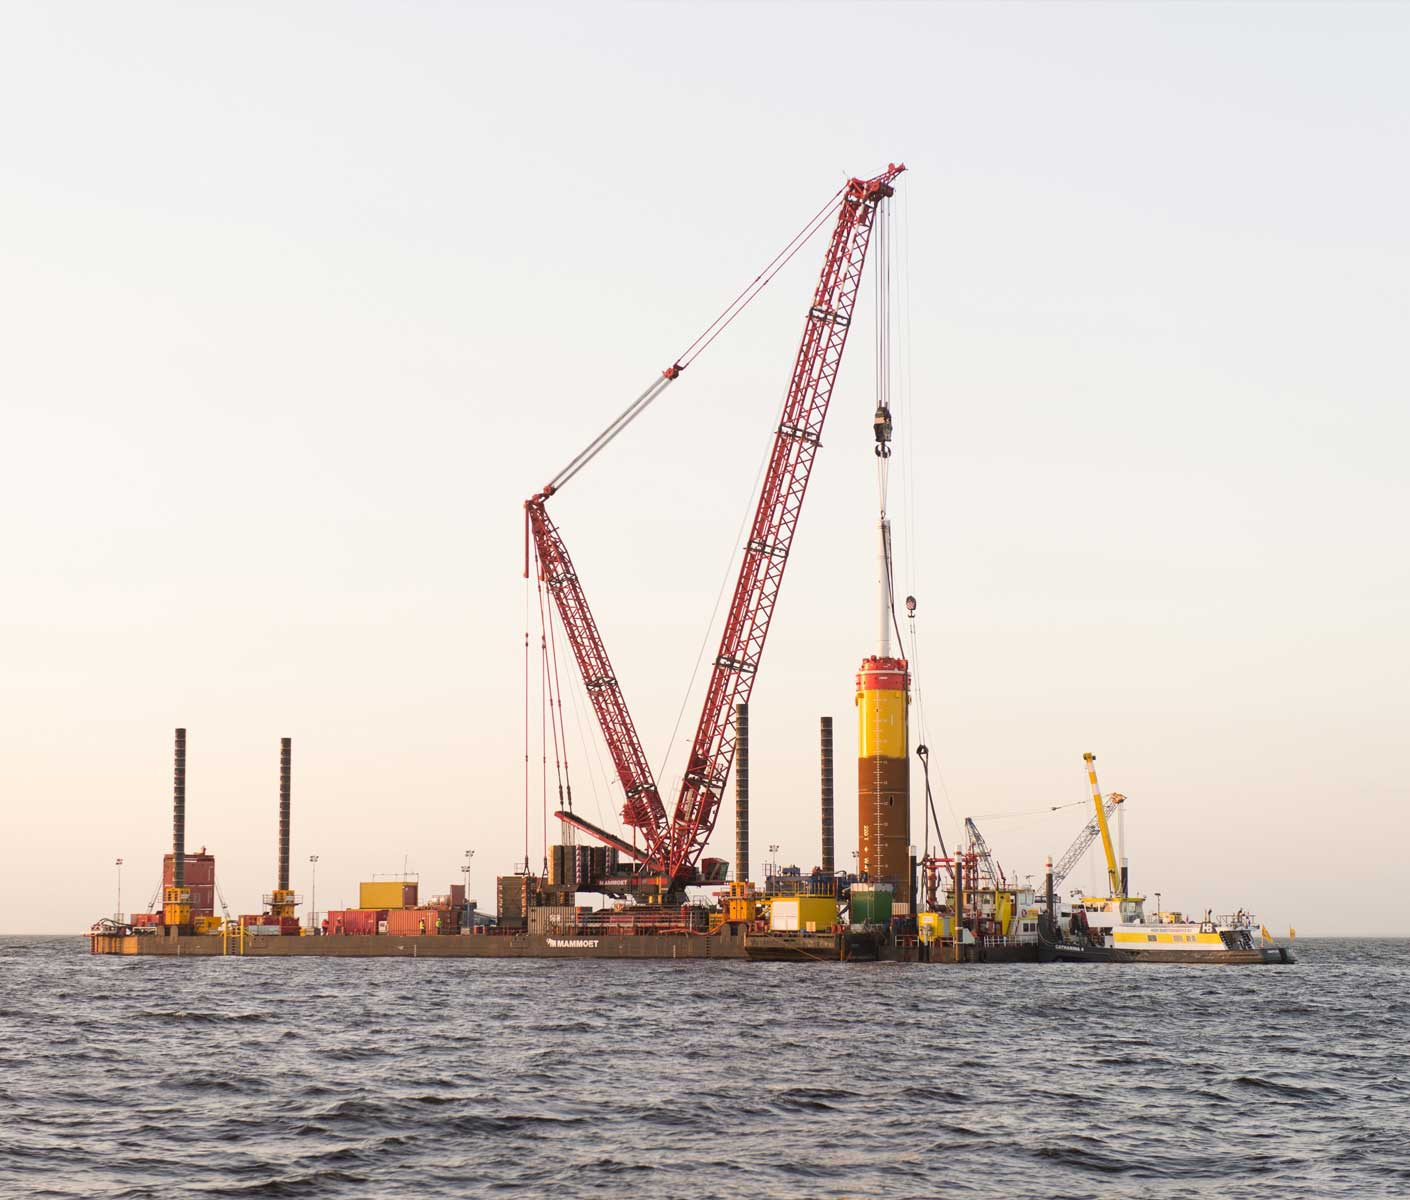 Last foundation pile for Westermeerwind nearshore windpark - The Netherlands